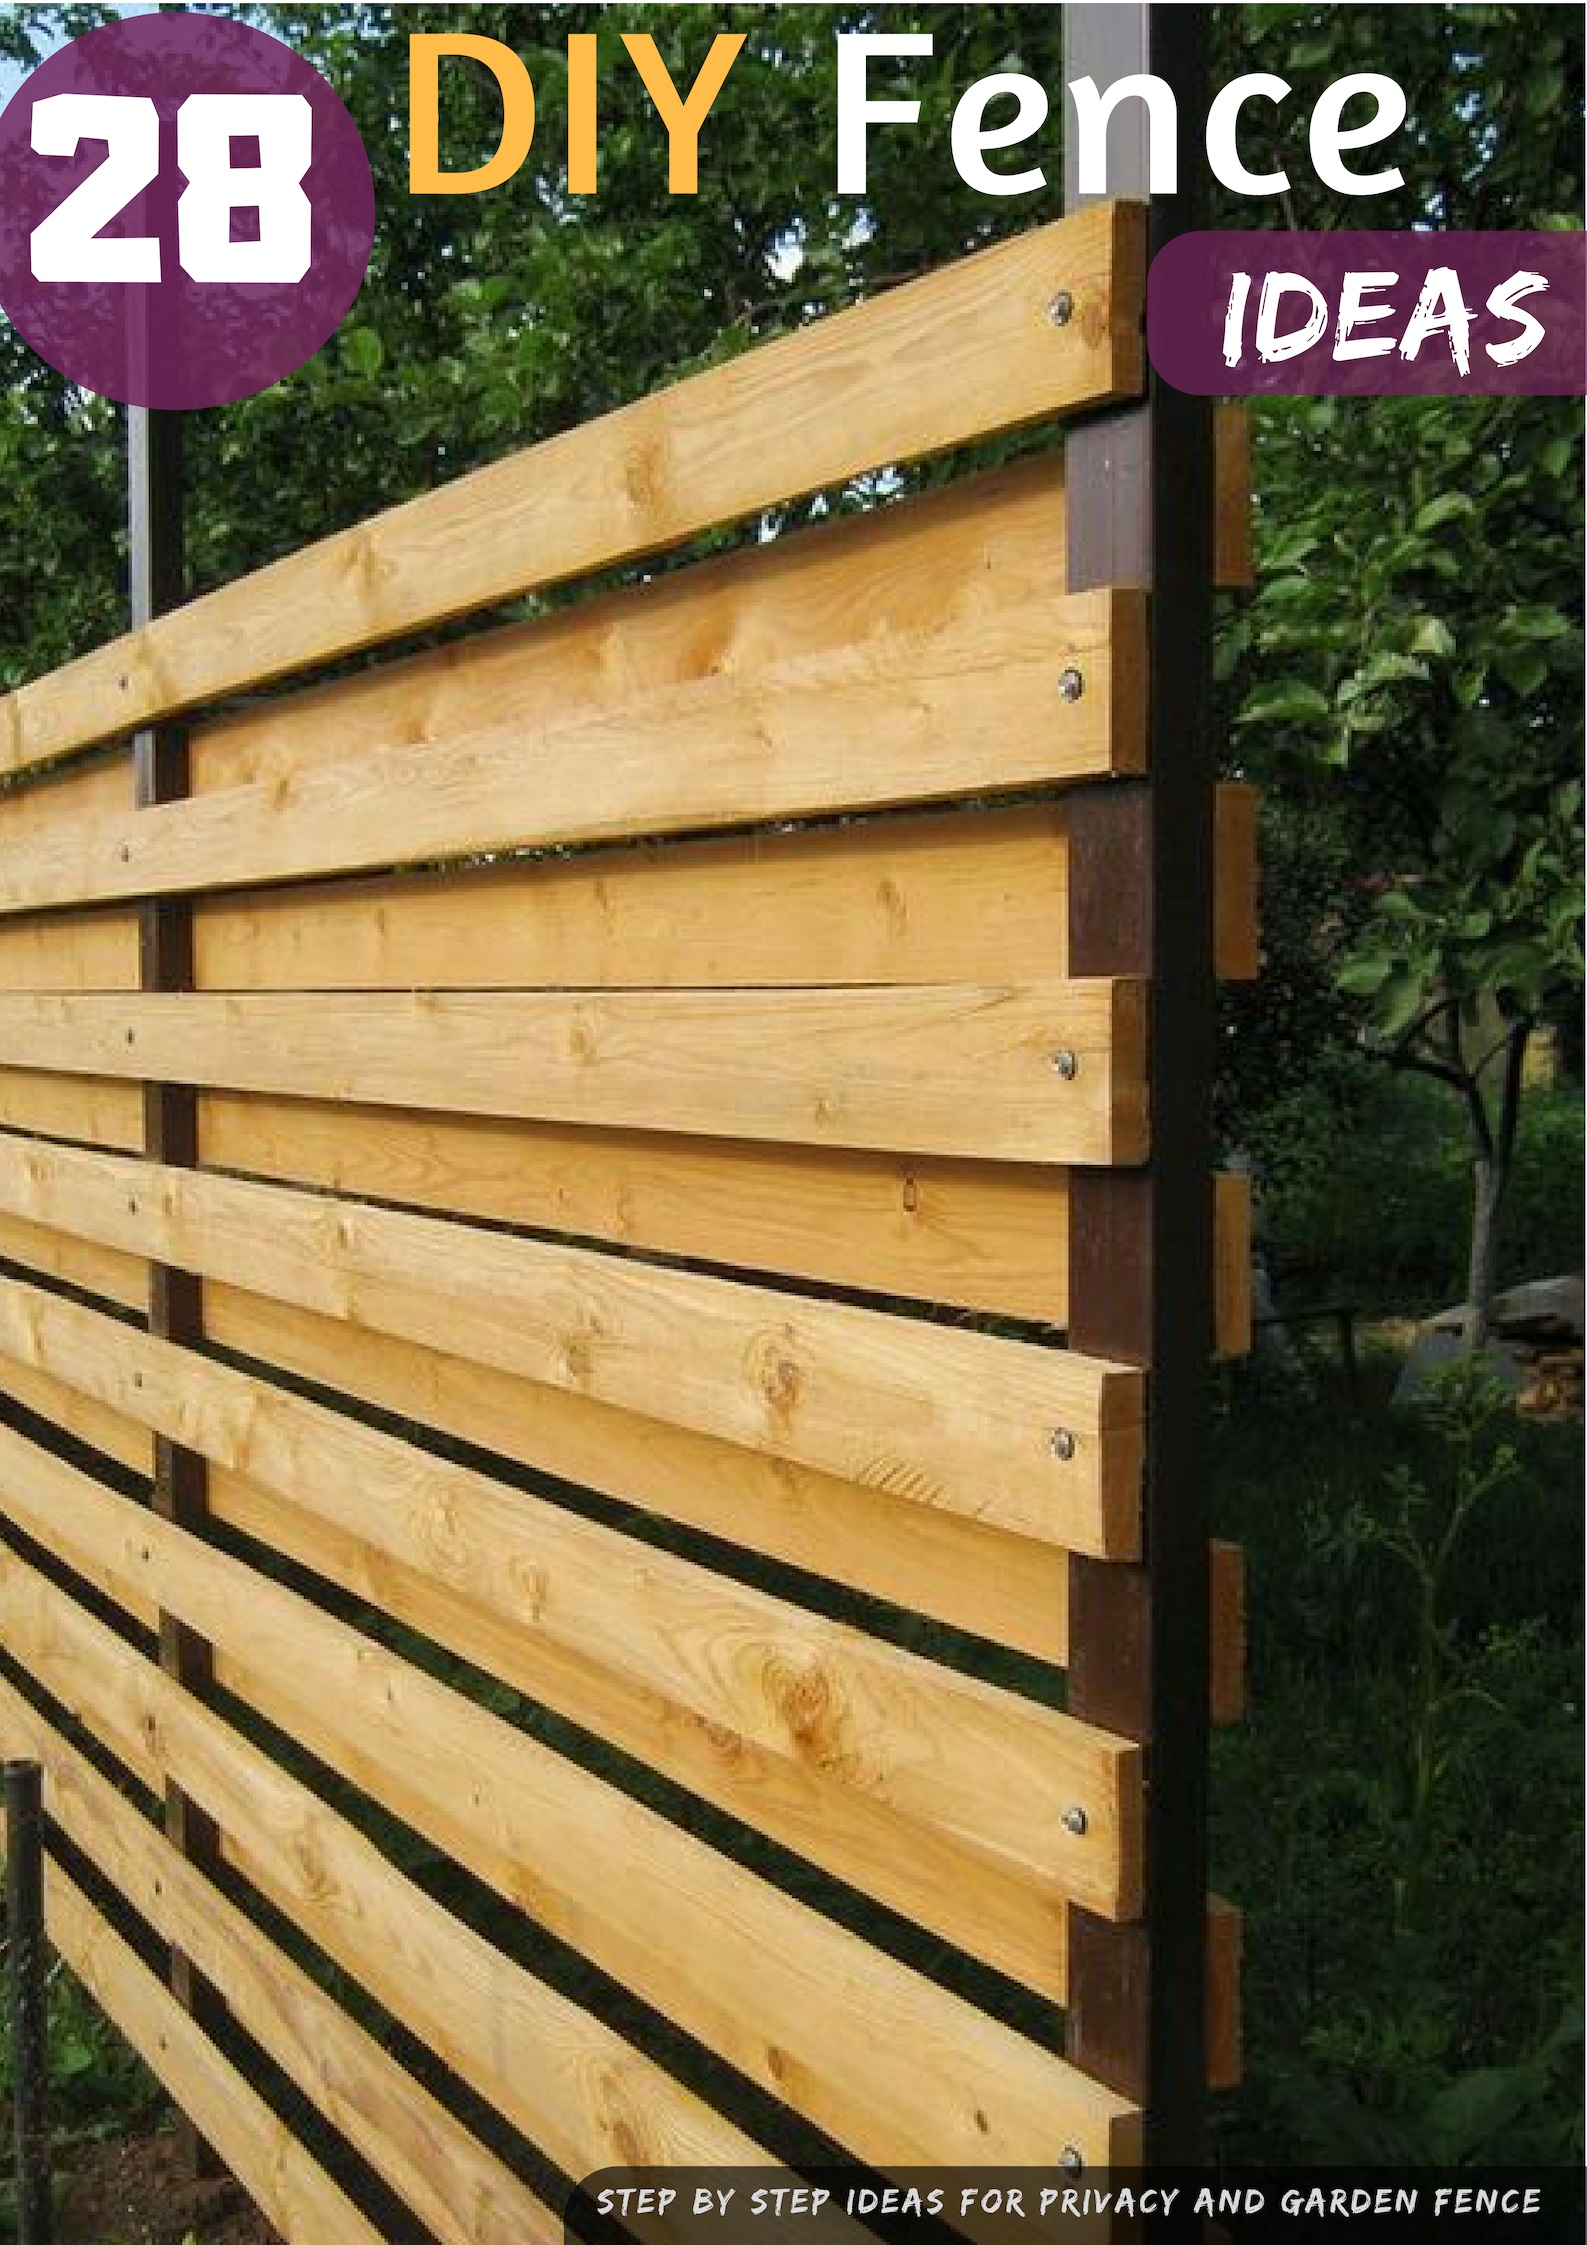 29 Diy Fence Ideas Garden And Privacy